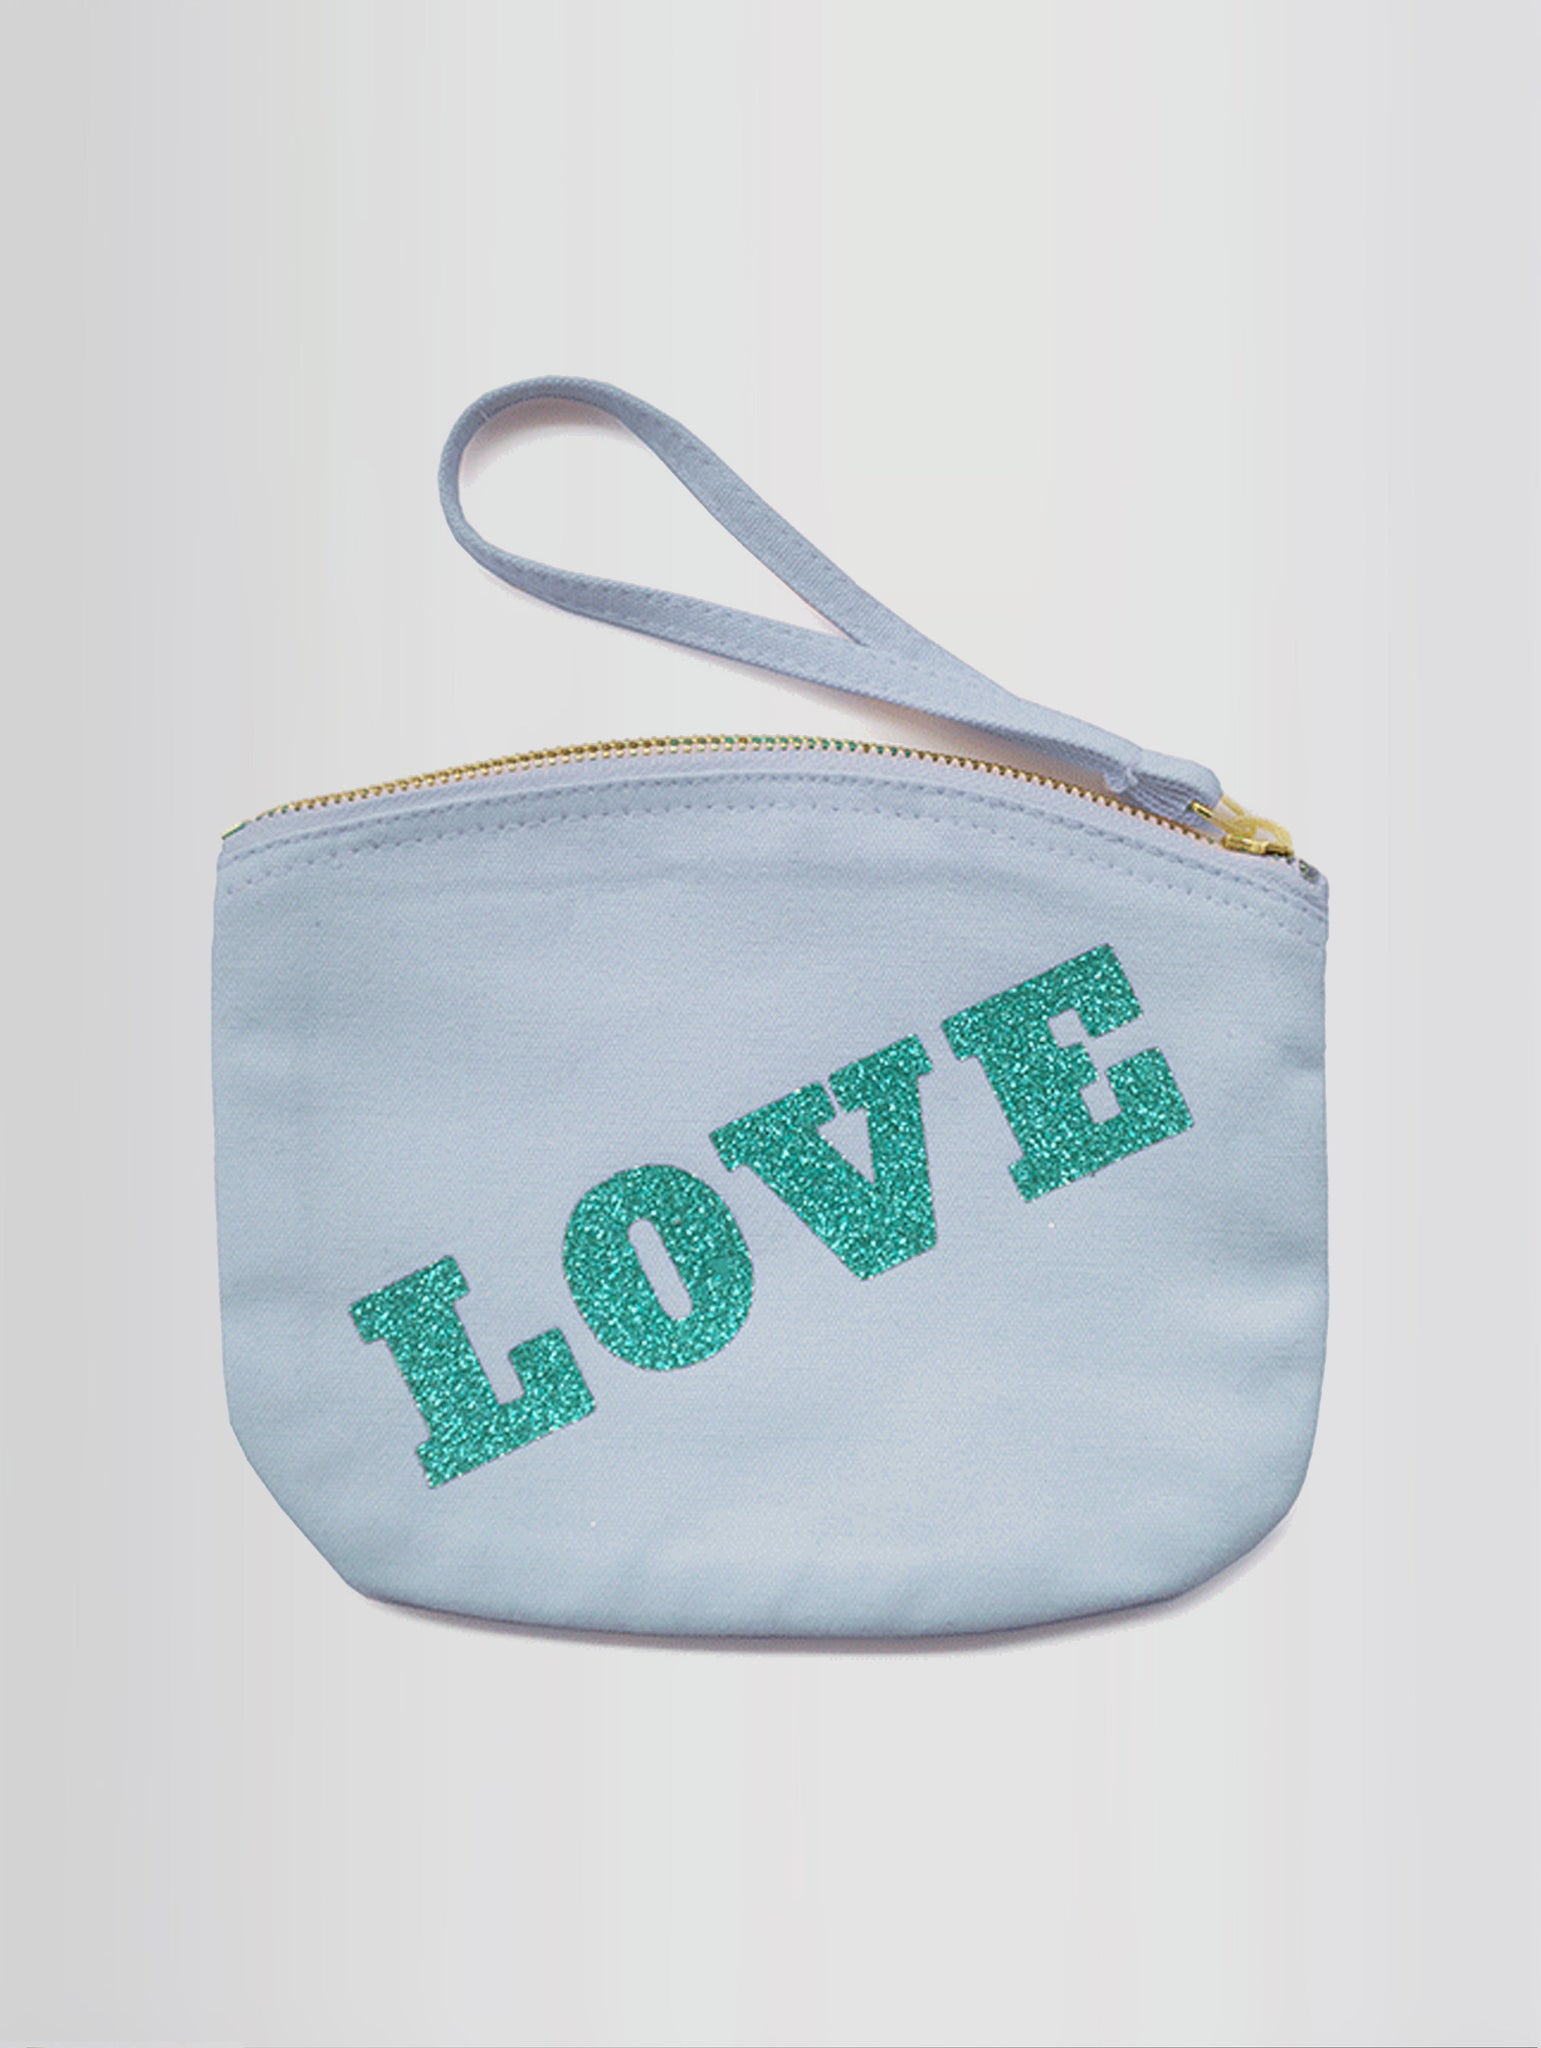 LOVE CLUTCH BAG IN PINK OR BABY BLUE